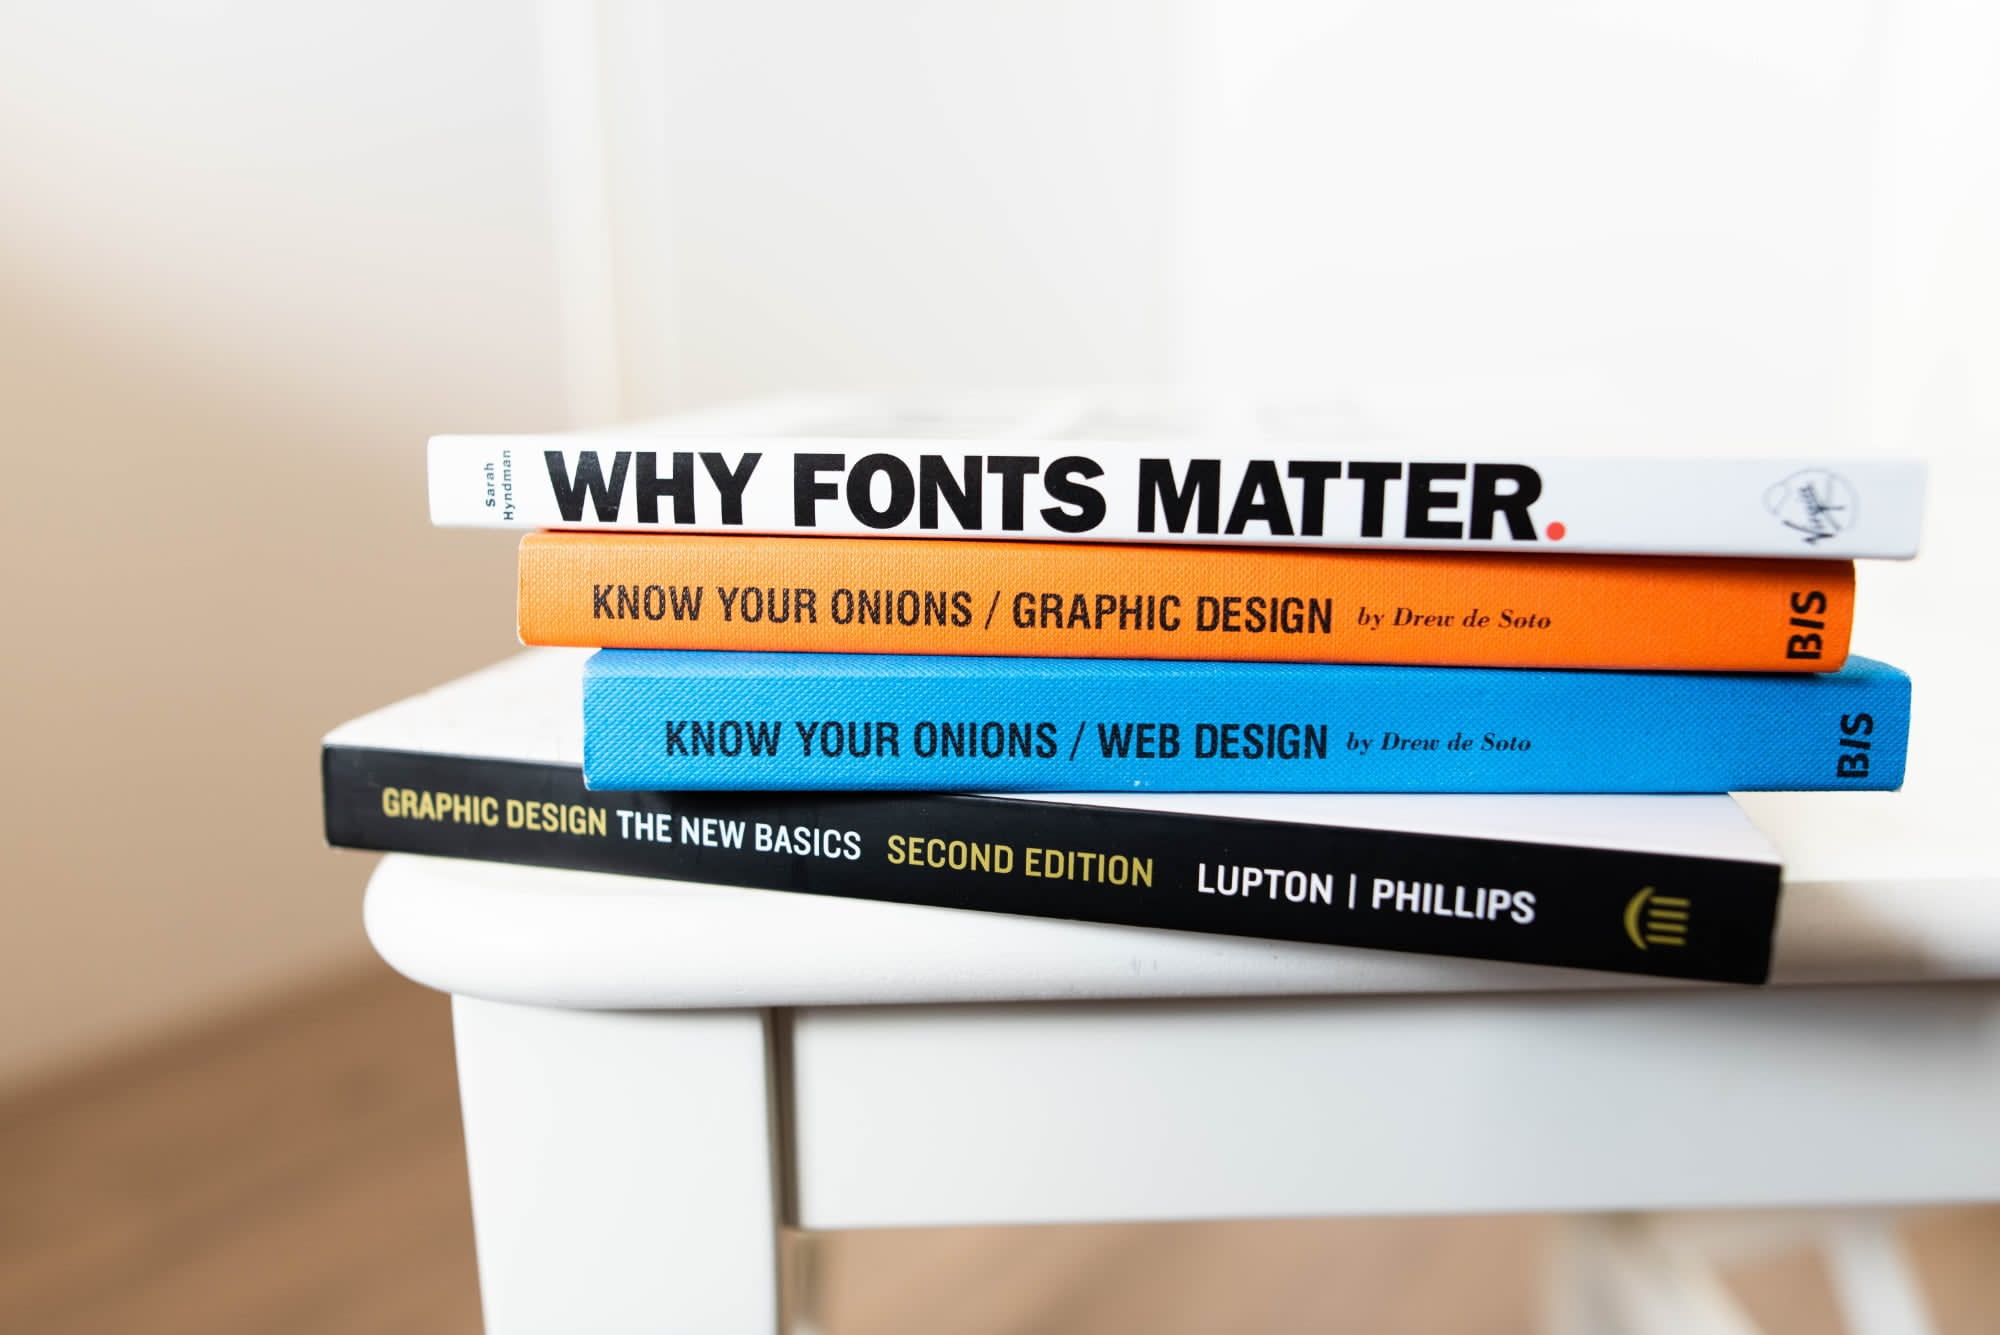 Stack of books about design